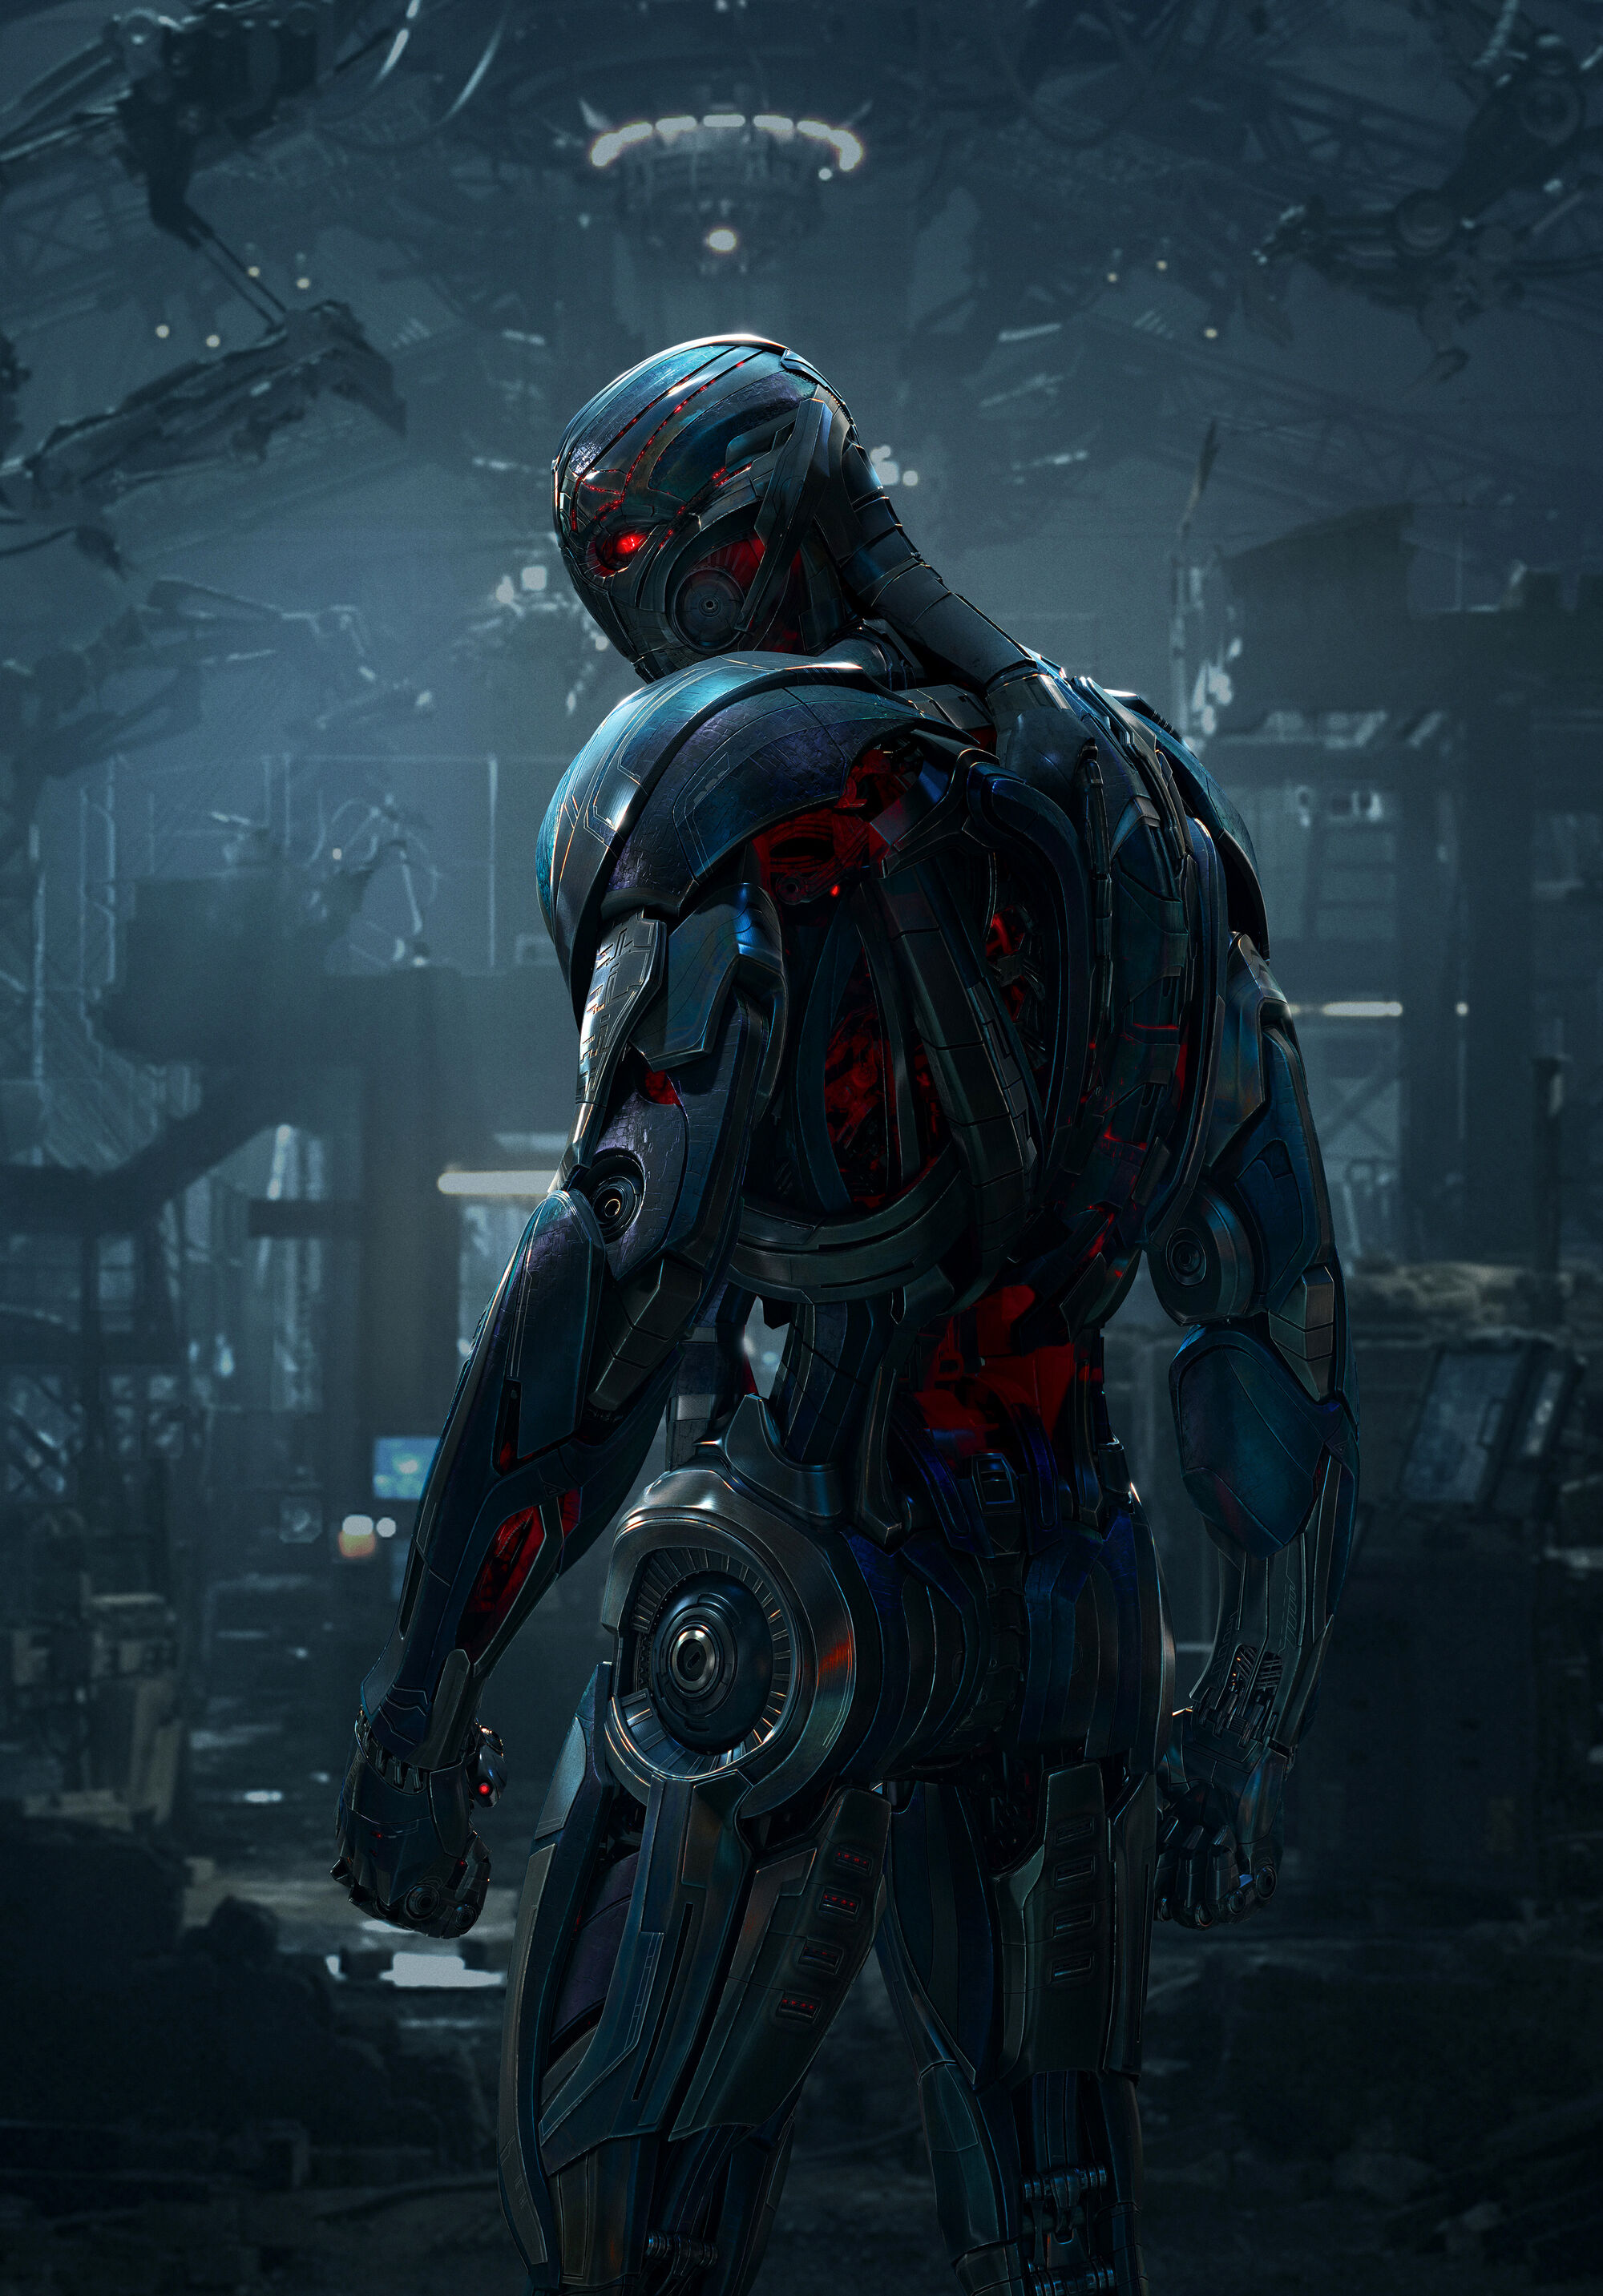 Ultron | Marvel Cinematic Universe Wiki | FANDOM powered by